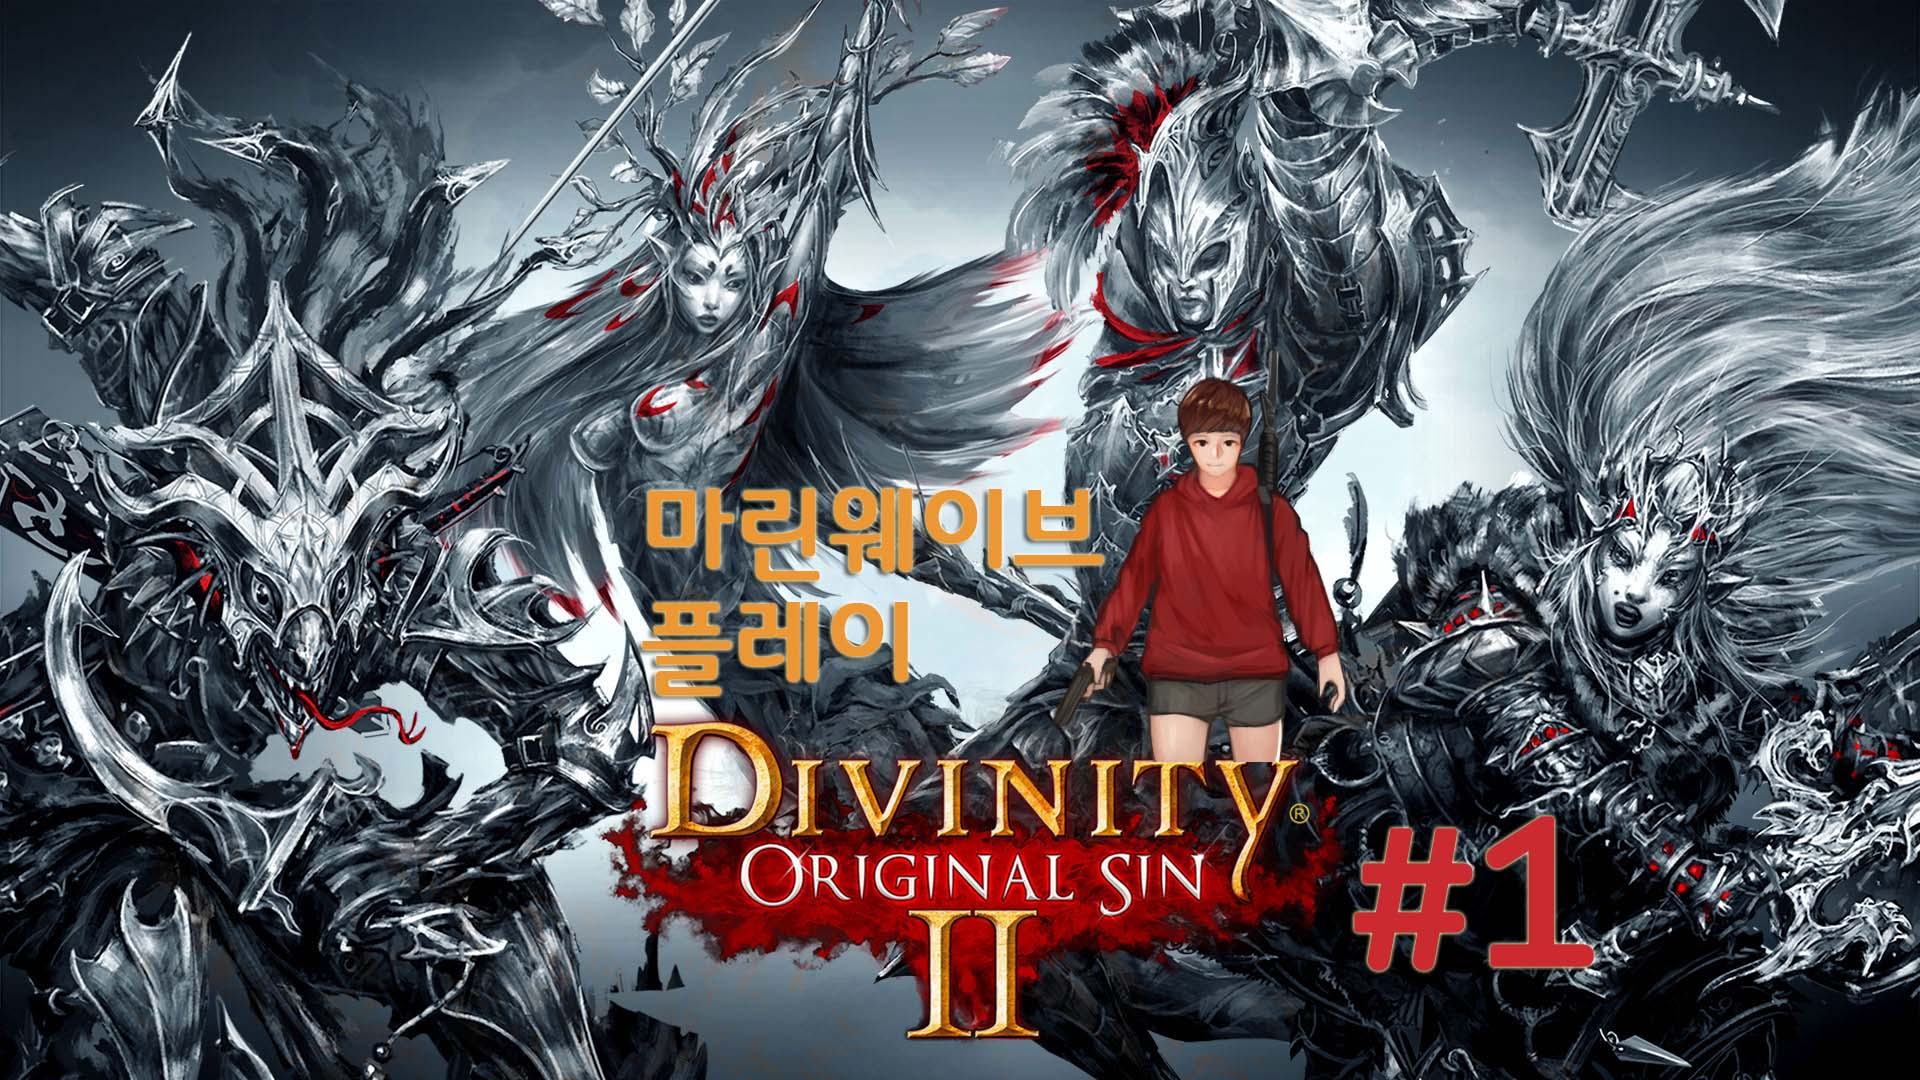 Divinity-Original-Sin-2-1080-Wallpaper-2.jpg